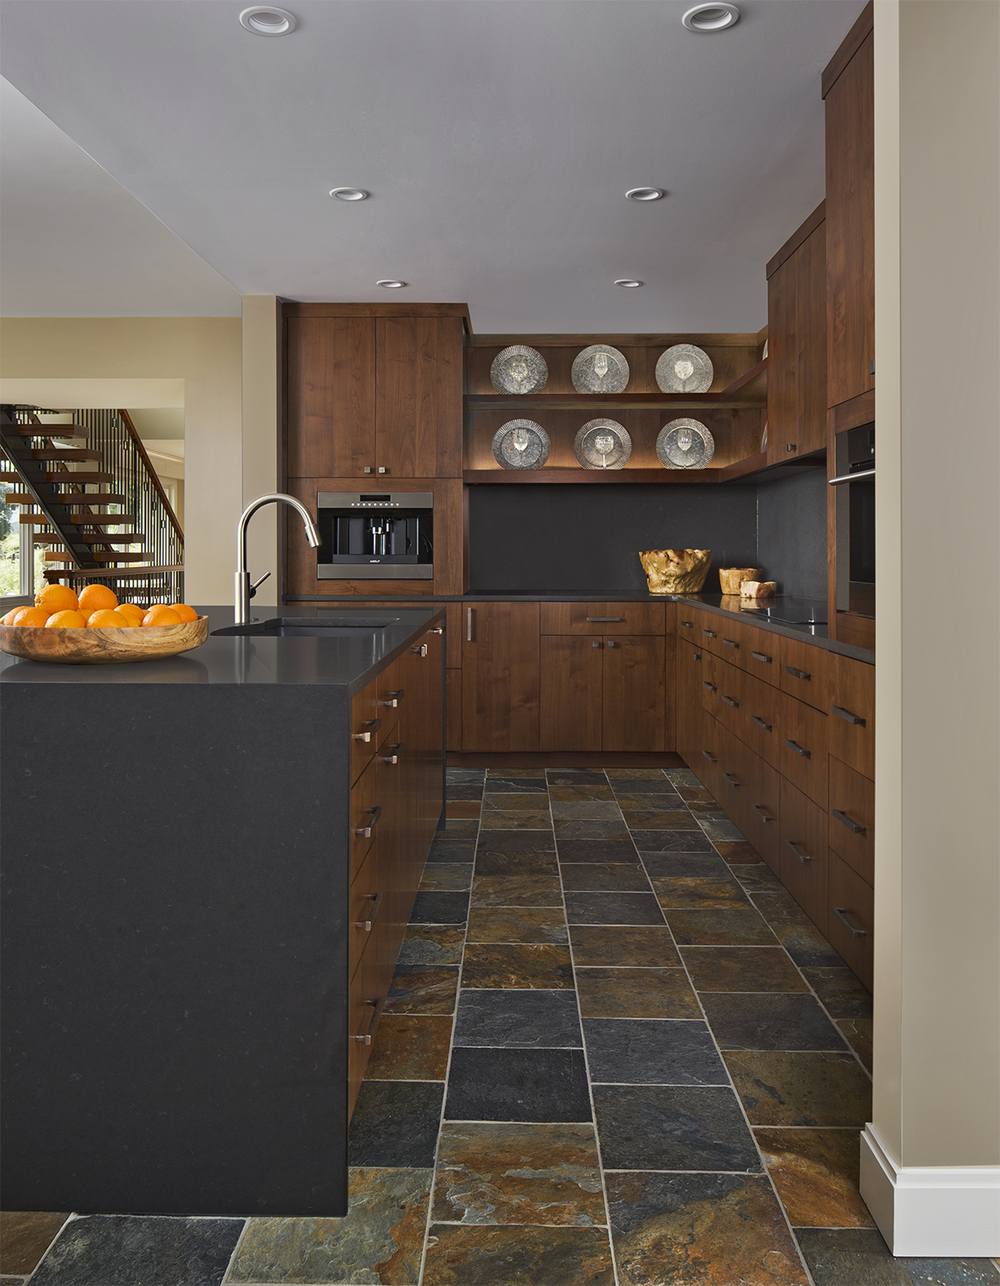 Entertaining Kitchen 3. Dunlap Design Group. Photo by Beth Singer..jpg